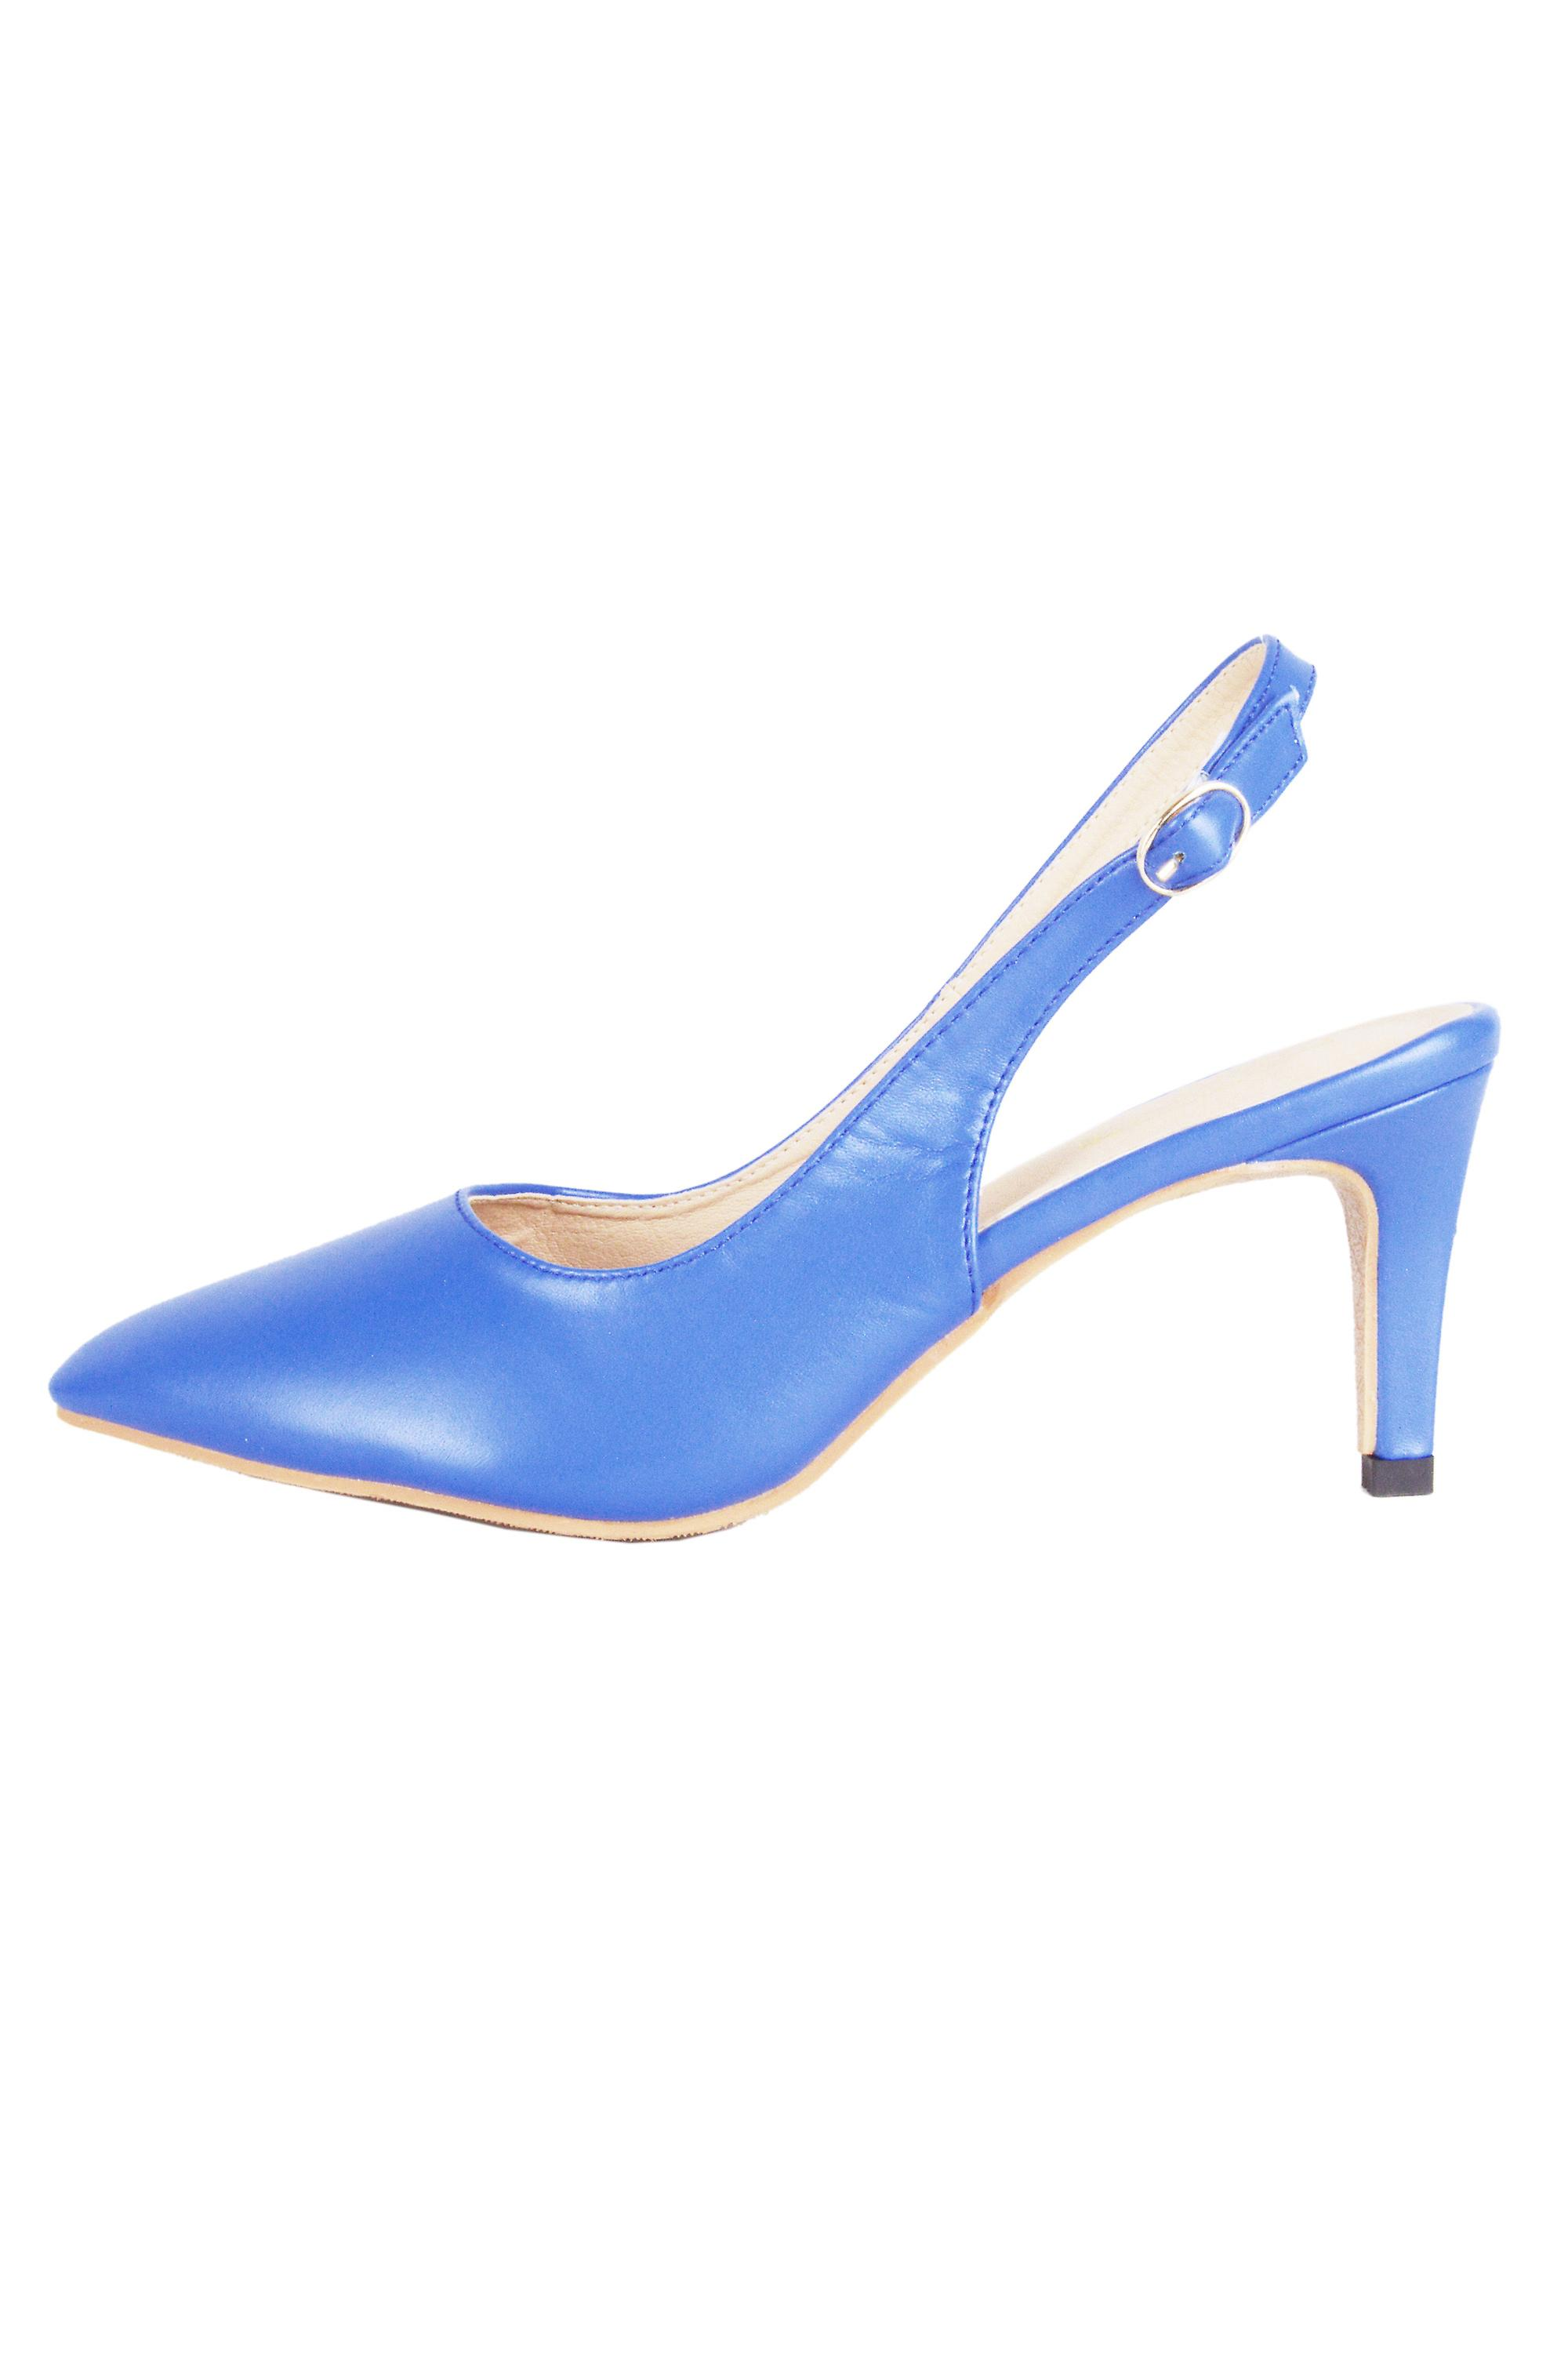 LMS Blue Pointed Toe Sling Back Court Shoe With Mid Heel